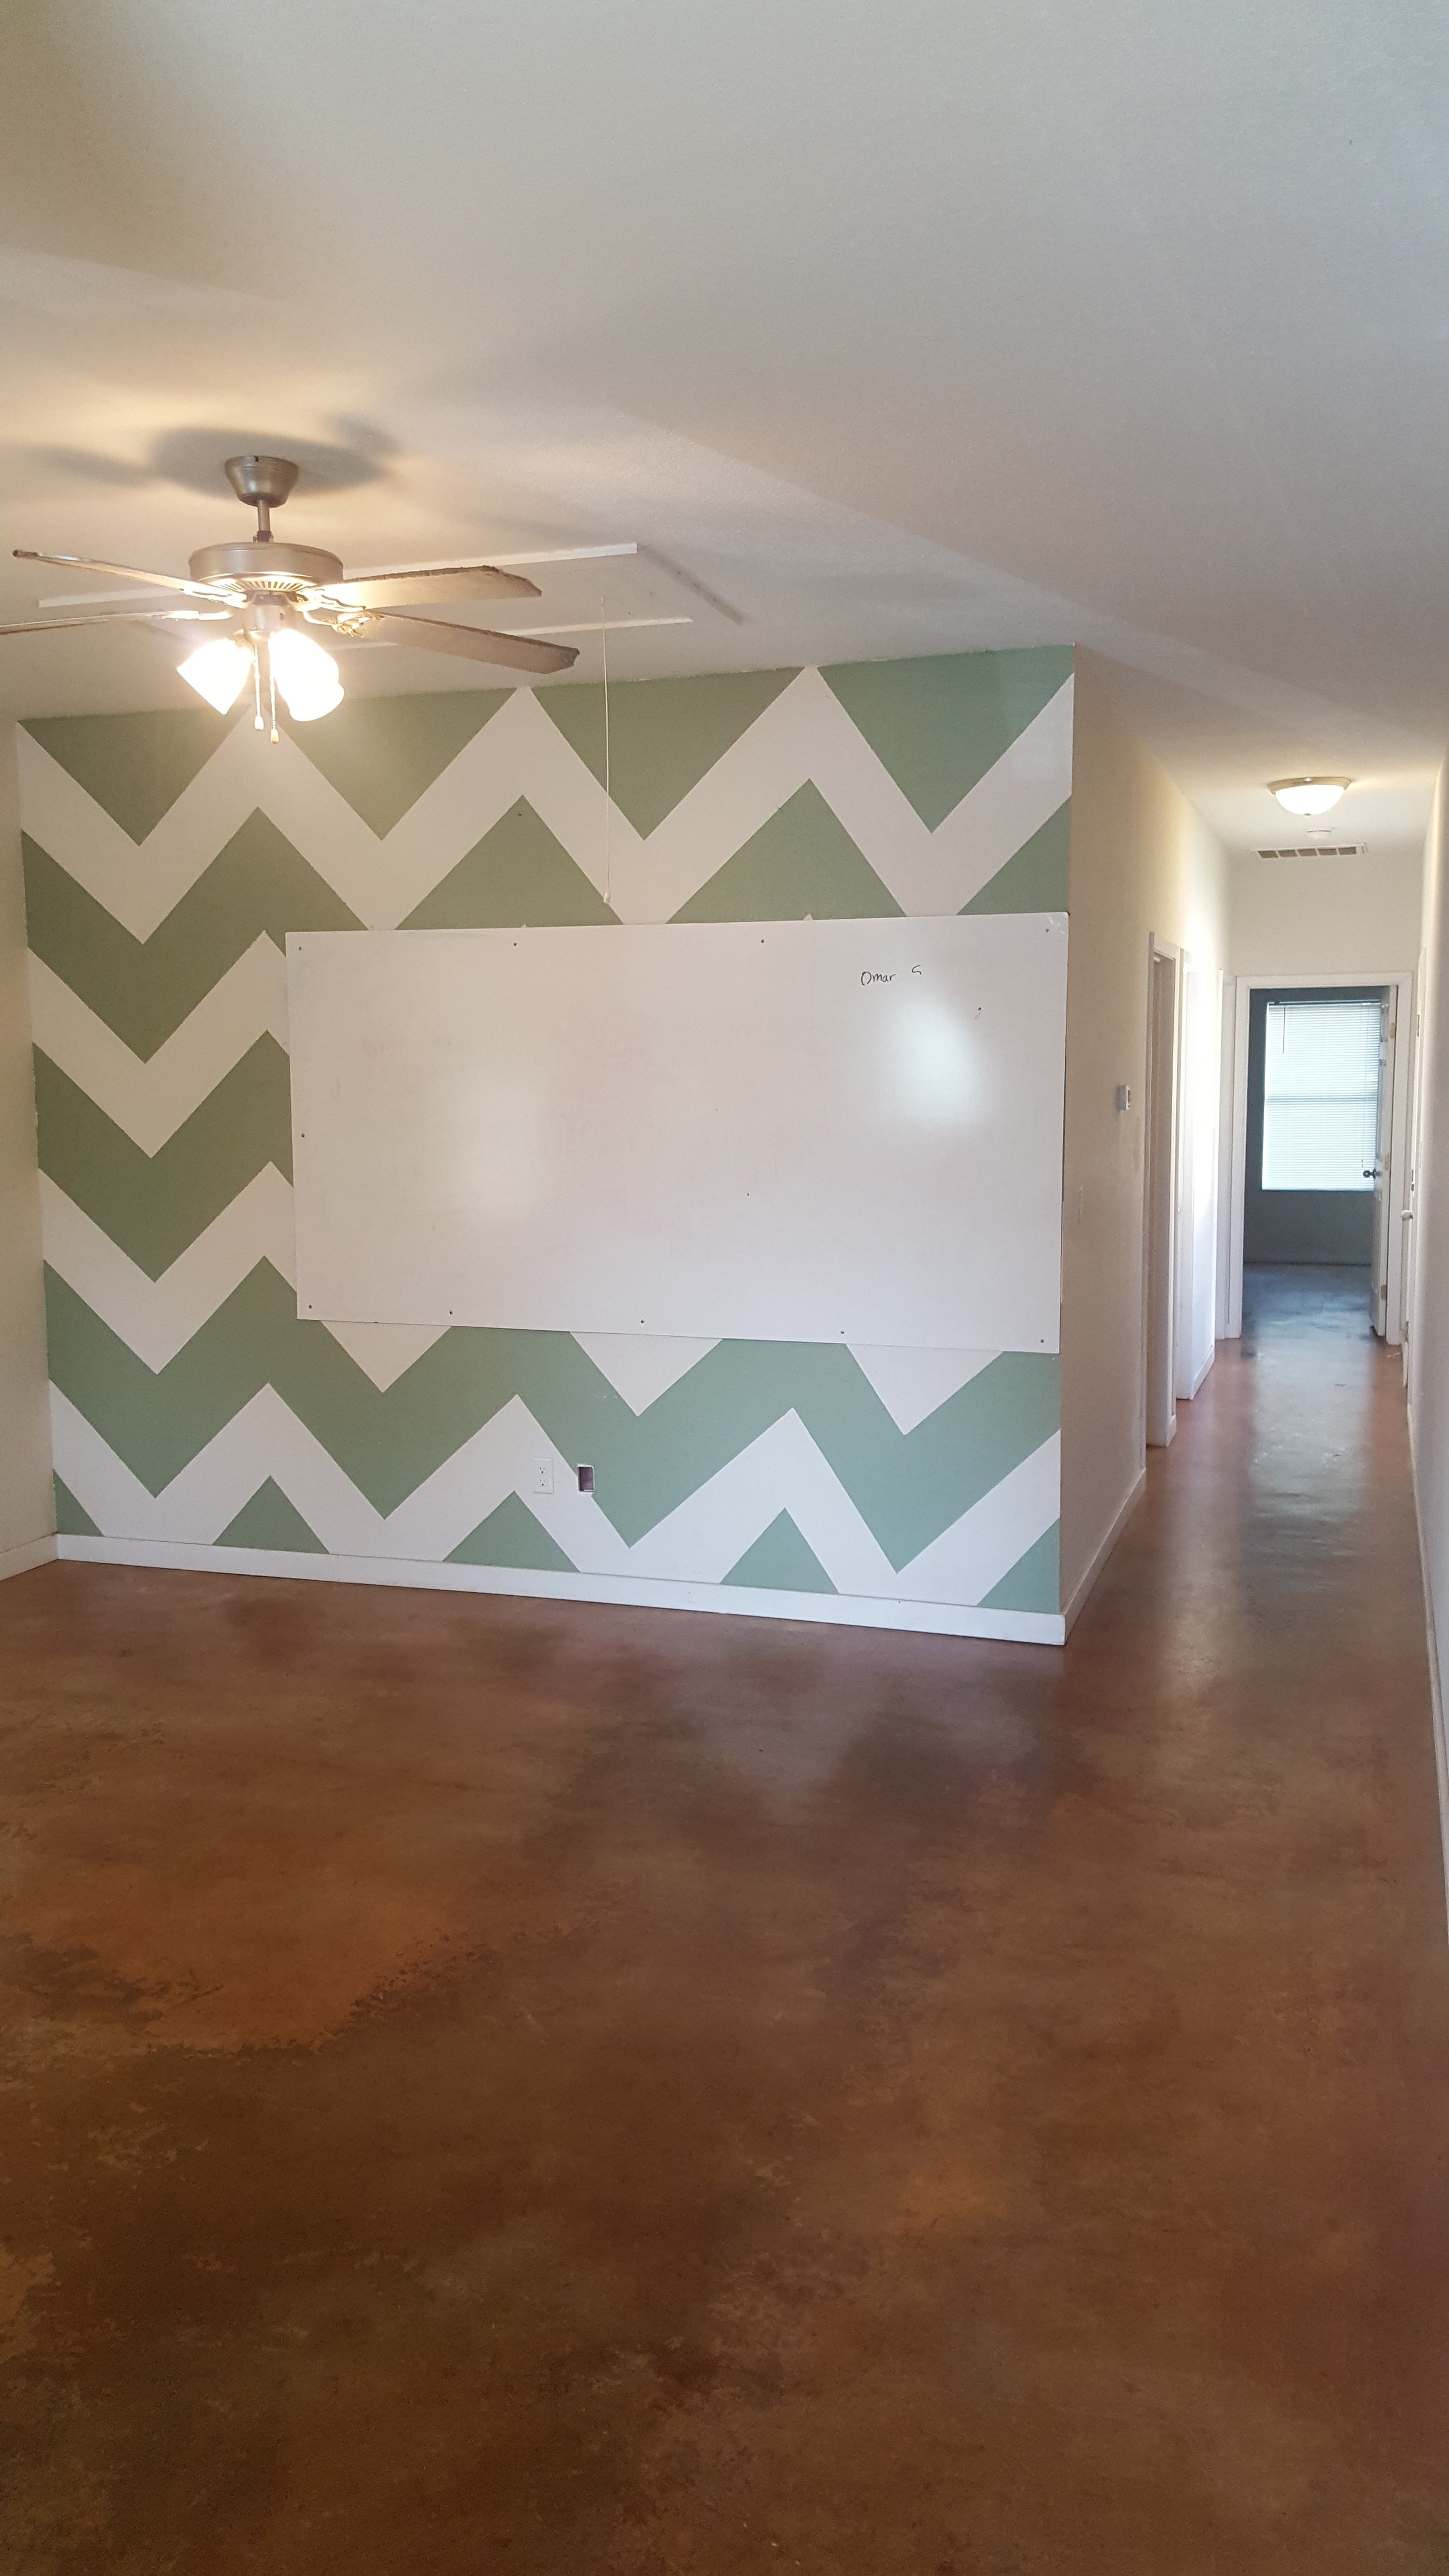 *Walls have been repainted*